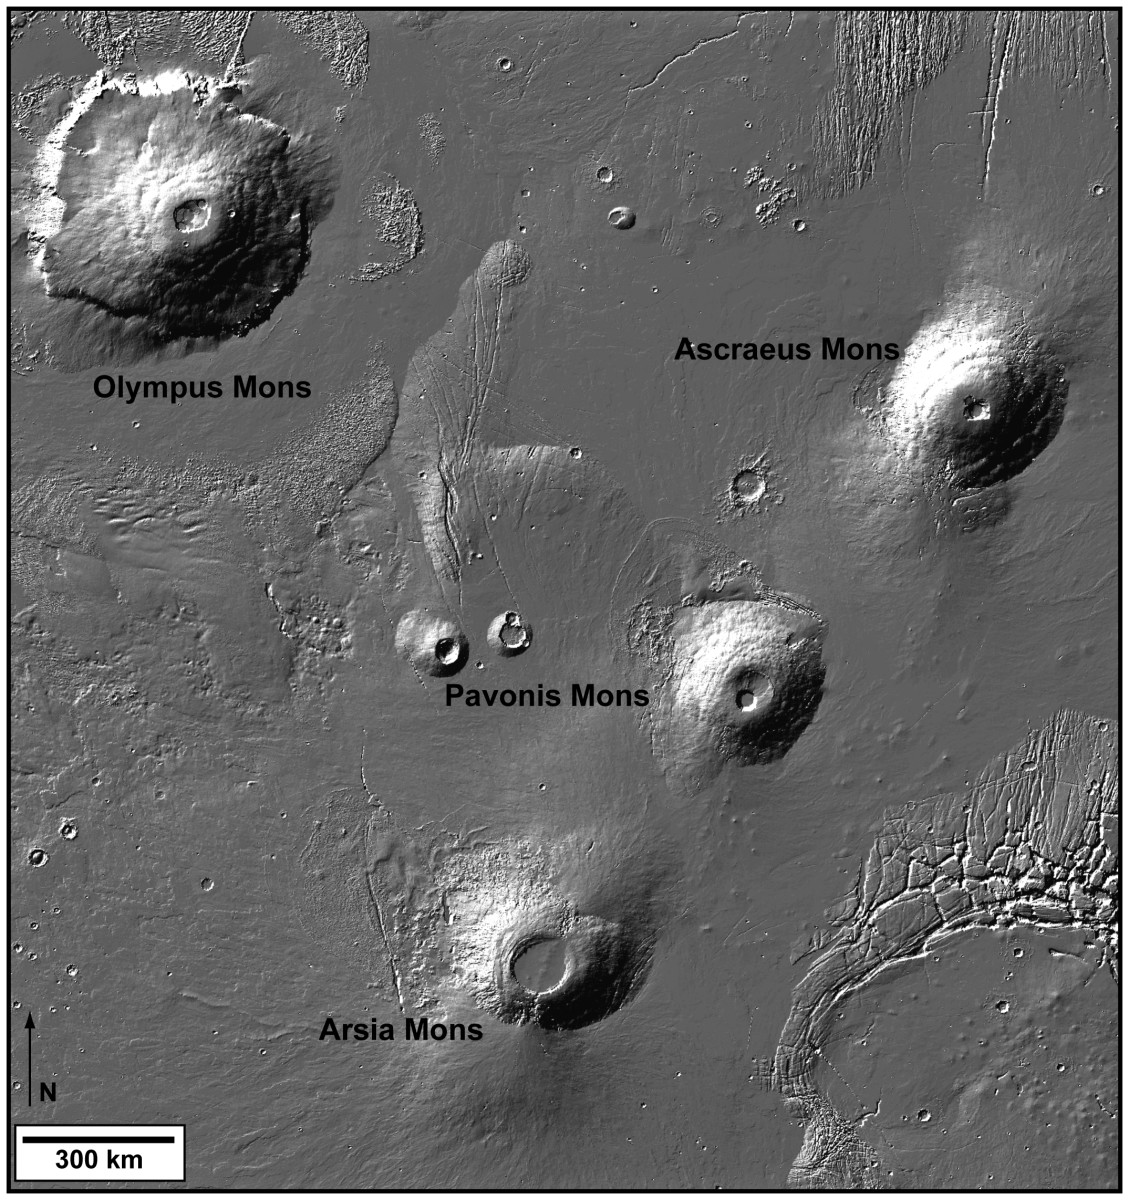 Shaded relief image derived from Mars Orbiter Laser Altimeter data, which flew onboard the Mars Global Surveyor-Image shows Olympus Mons and the three Tharsis Montes volcanoes . Photo credit NASA